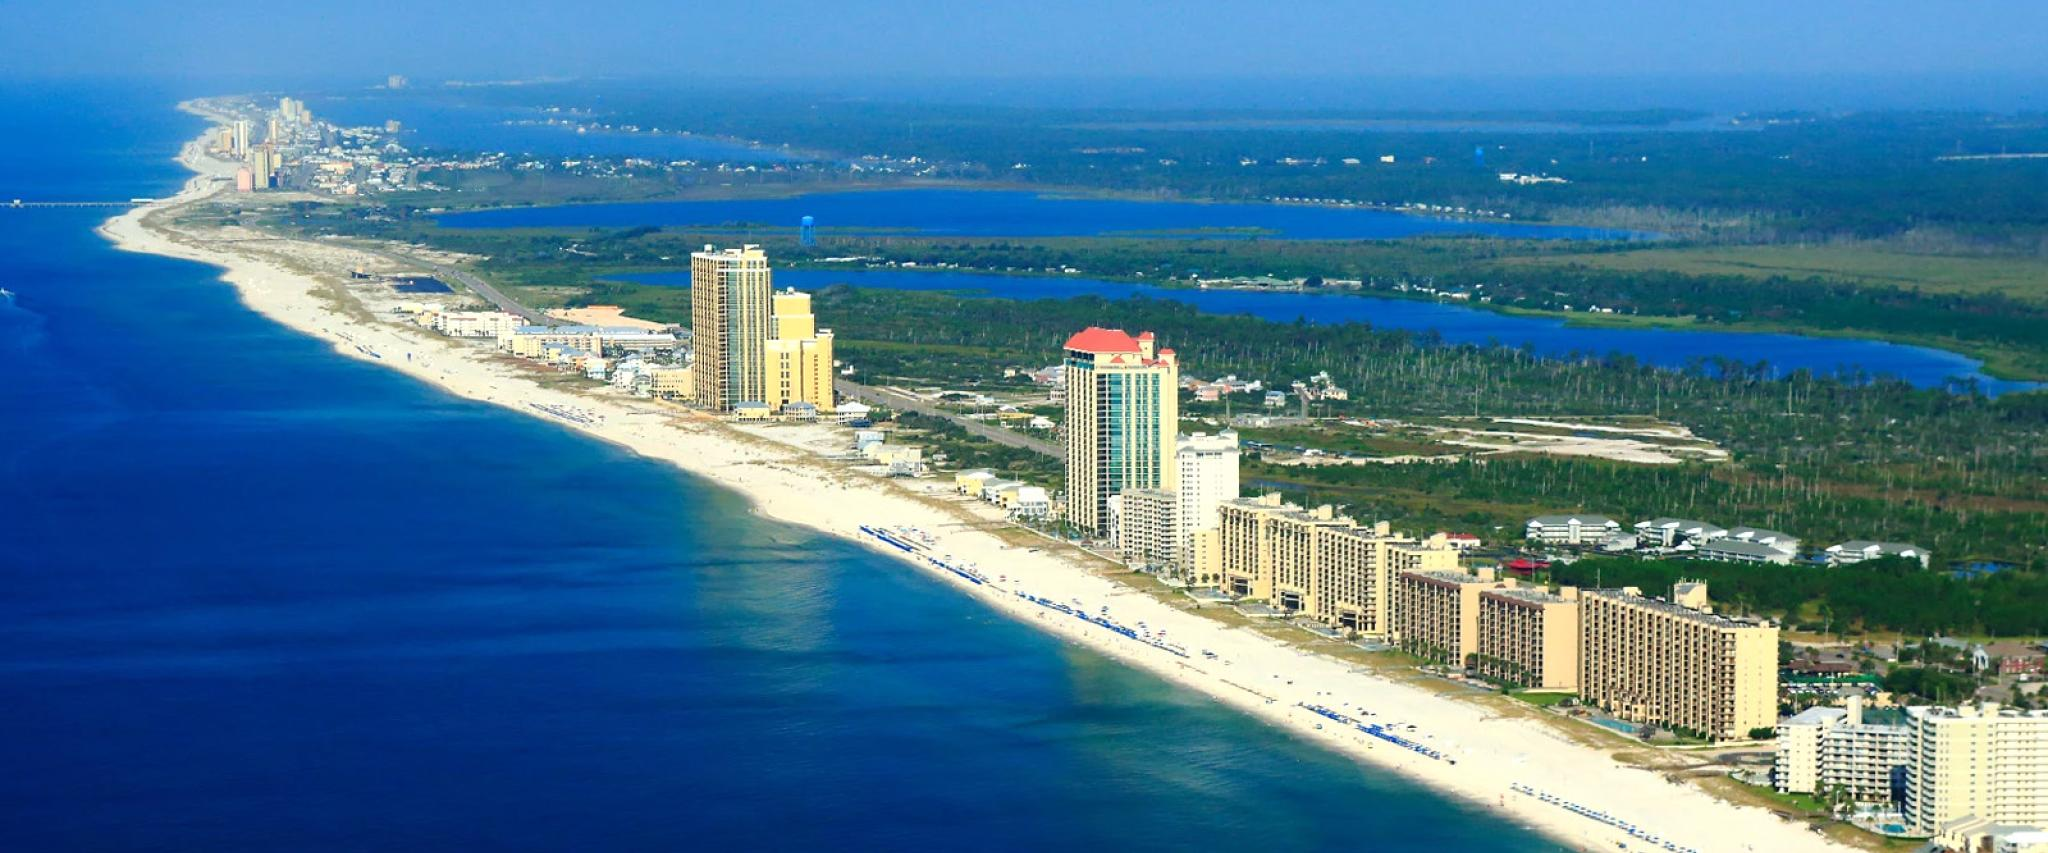 8 Things to Know Before Your Gulf Shores and Orange Beach Vacation